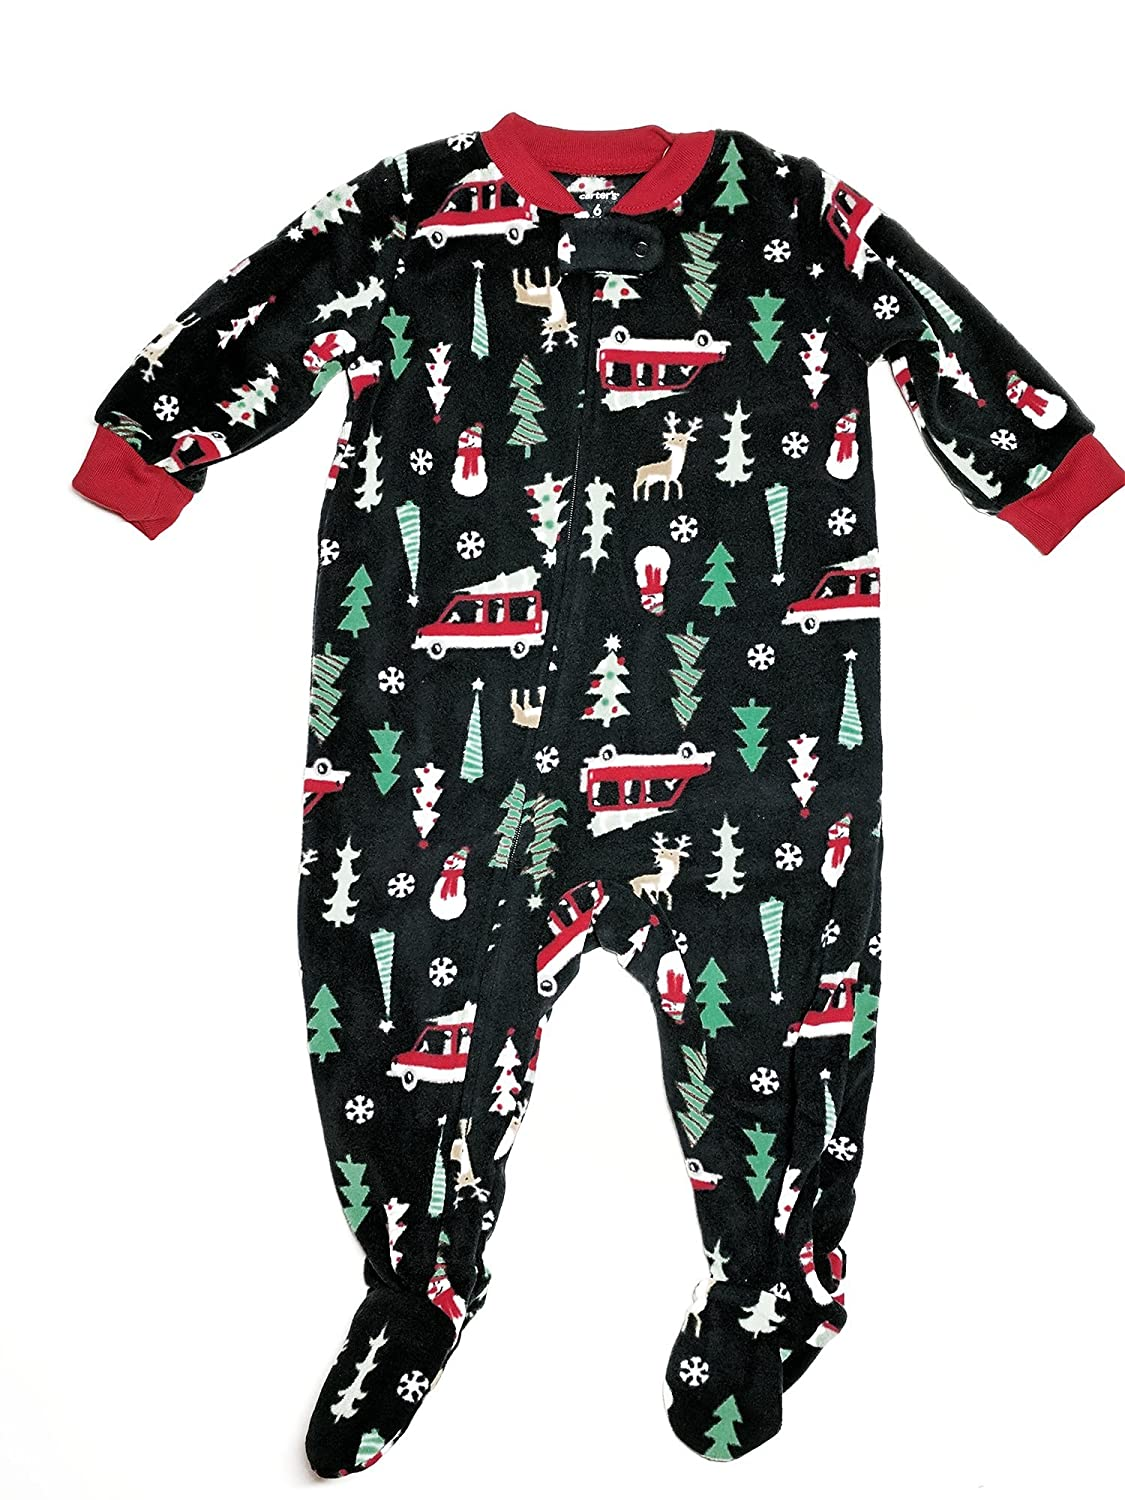 Carter's Baby Boys' Santa Print Fleece Zip up Sleep Play Carters 327G106